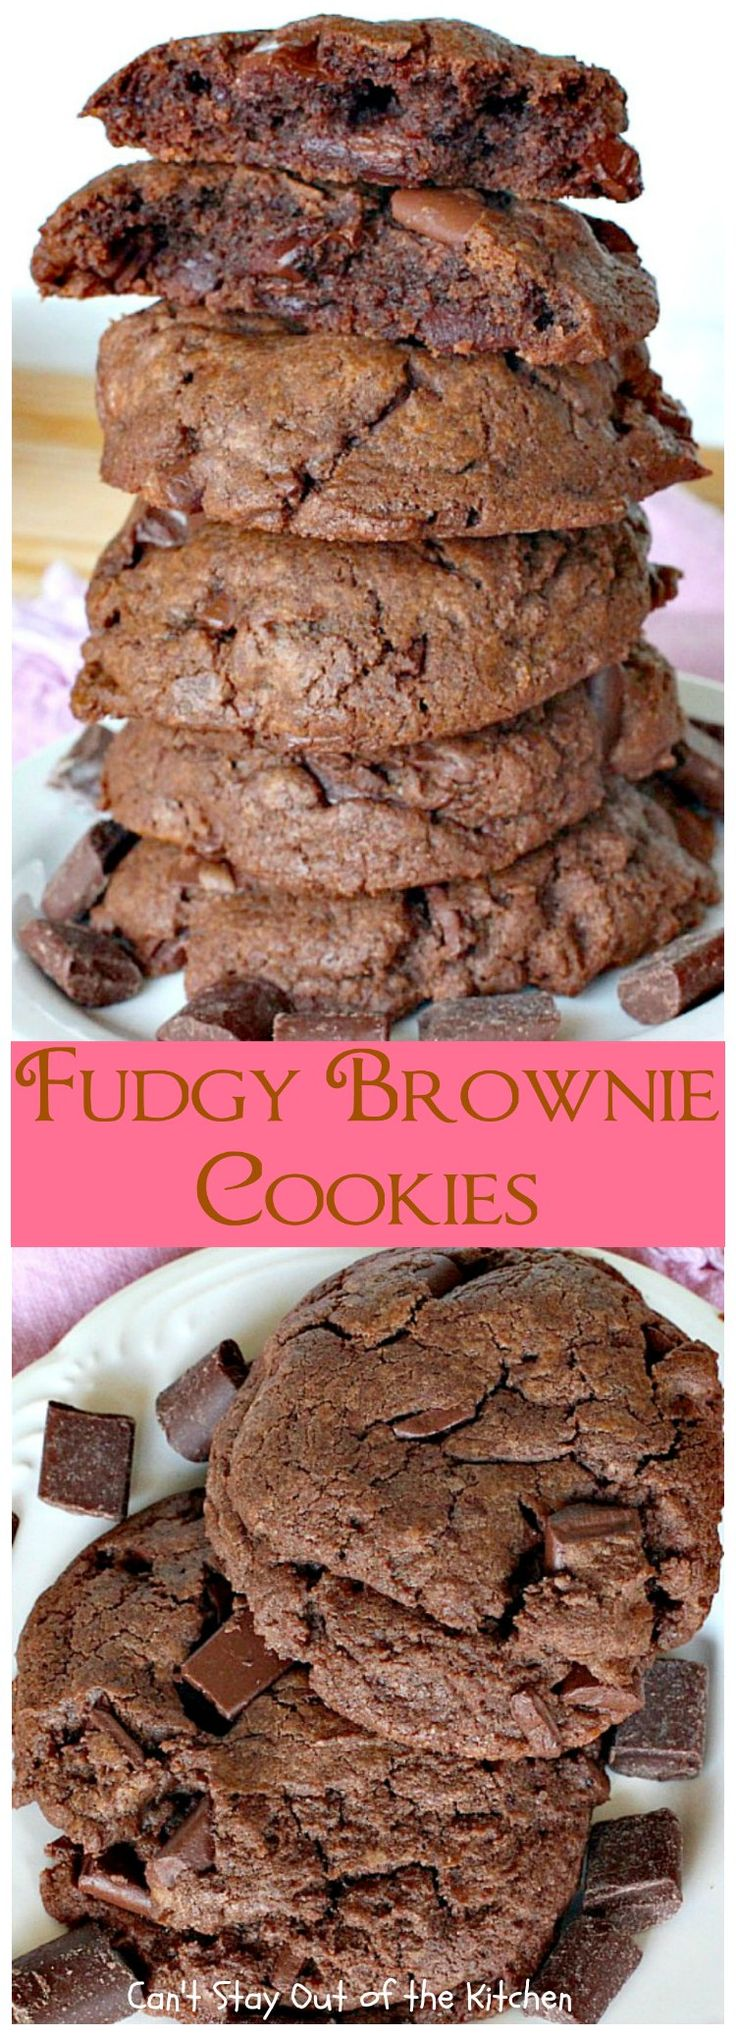 Fudgy Brownie Cookies | Can't Stay Out of the Kitchen | These chocolate cookies are awesome.